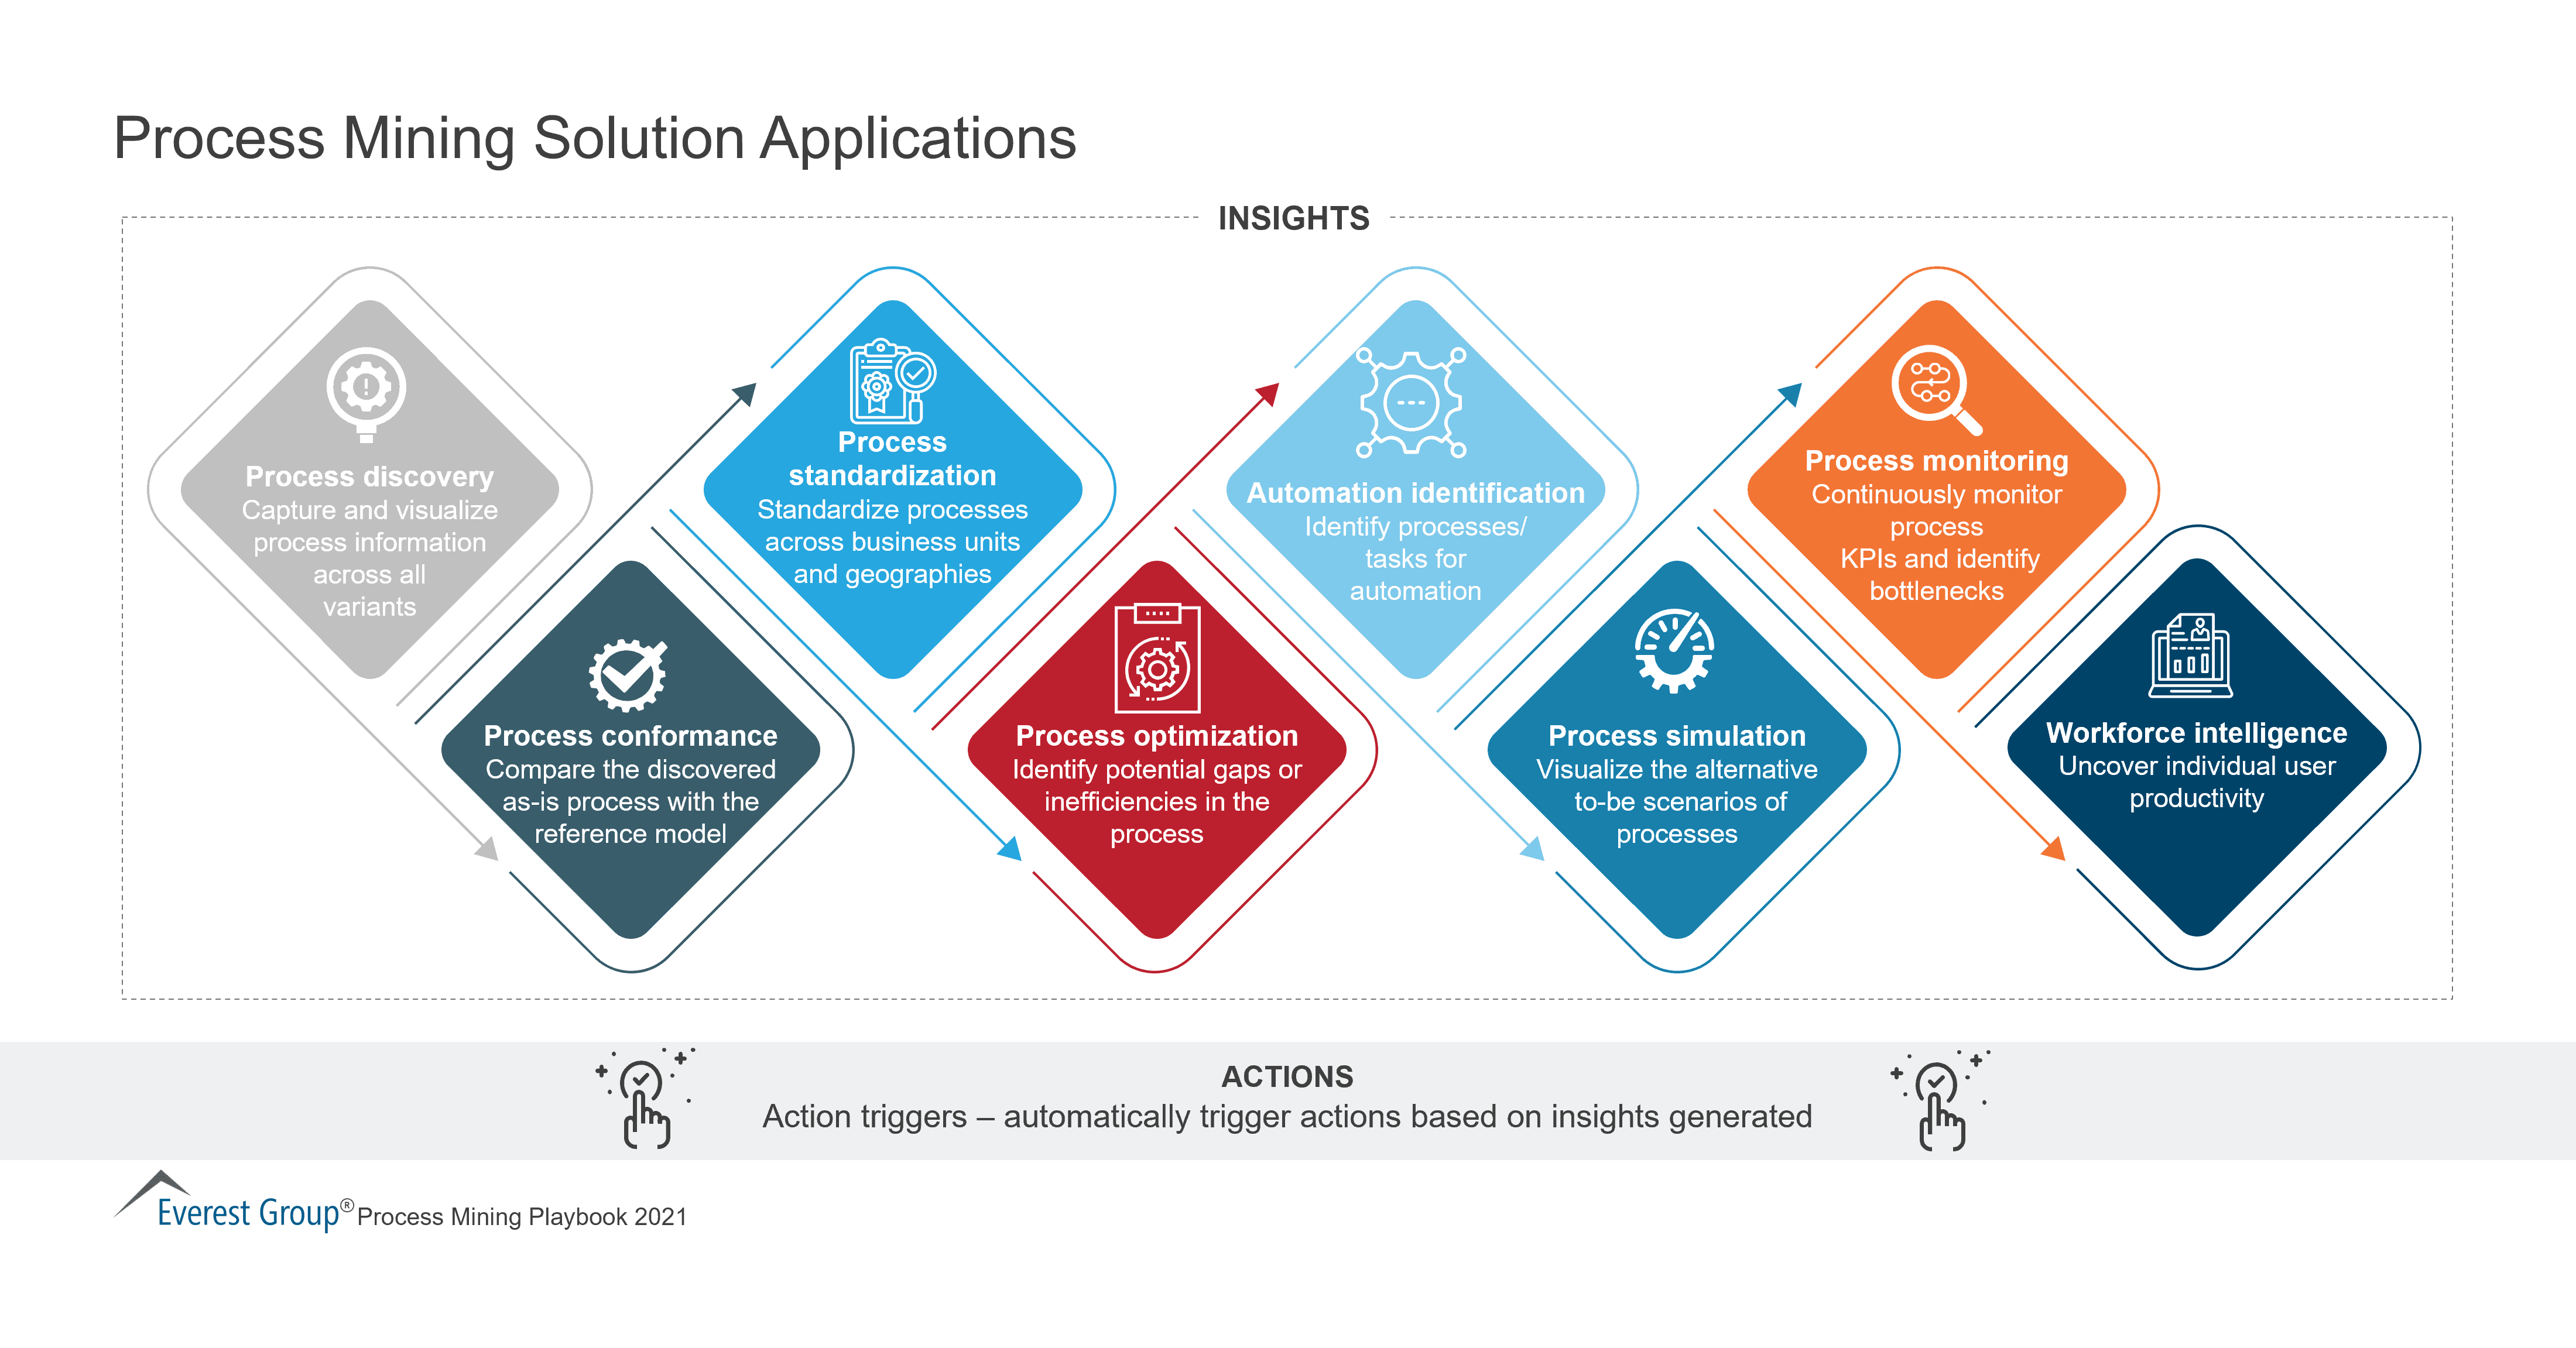 Process Mining Solution Applications